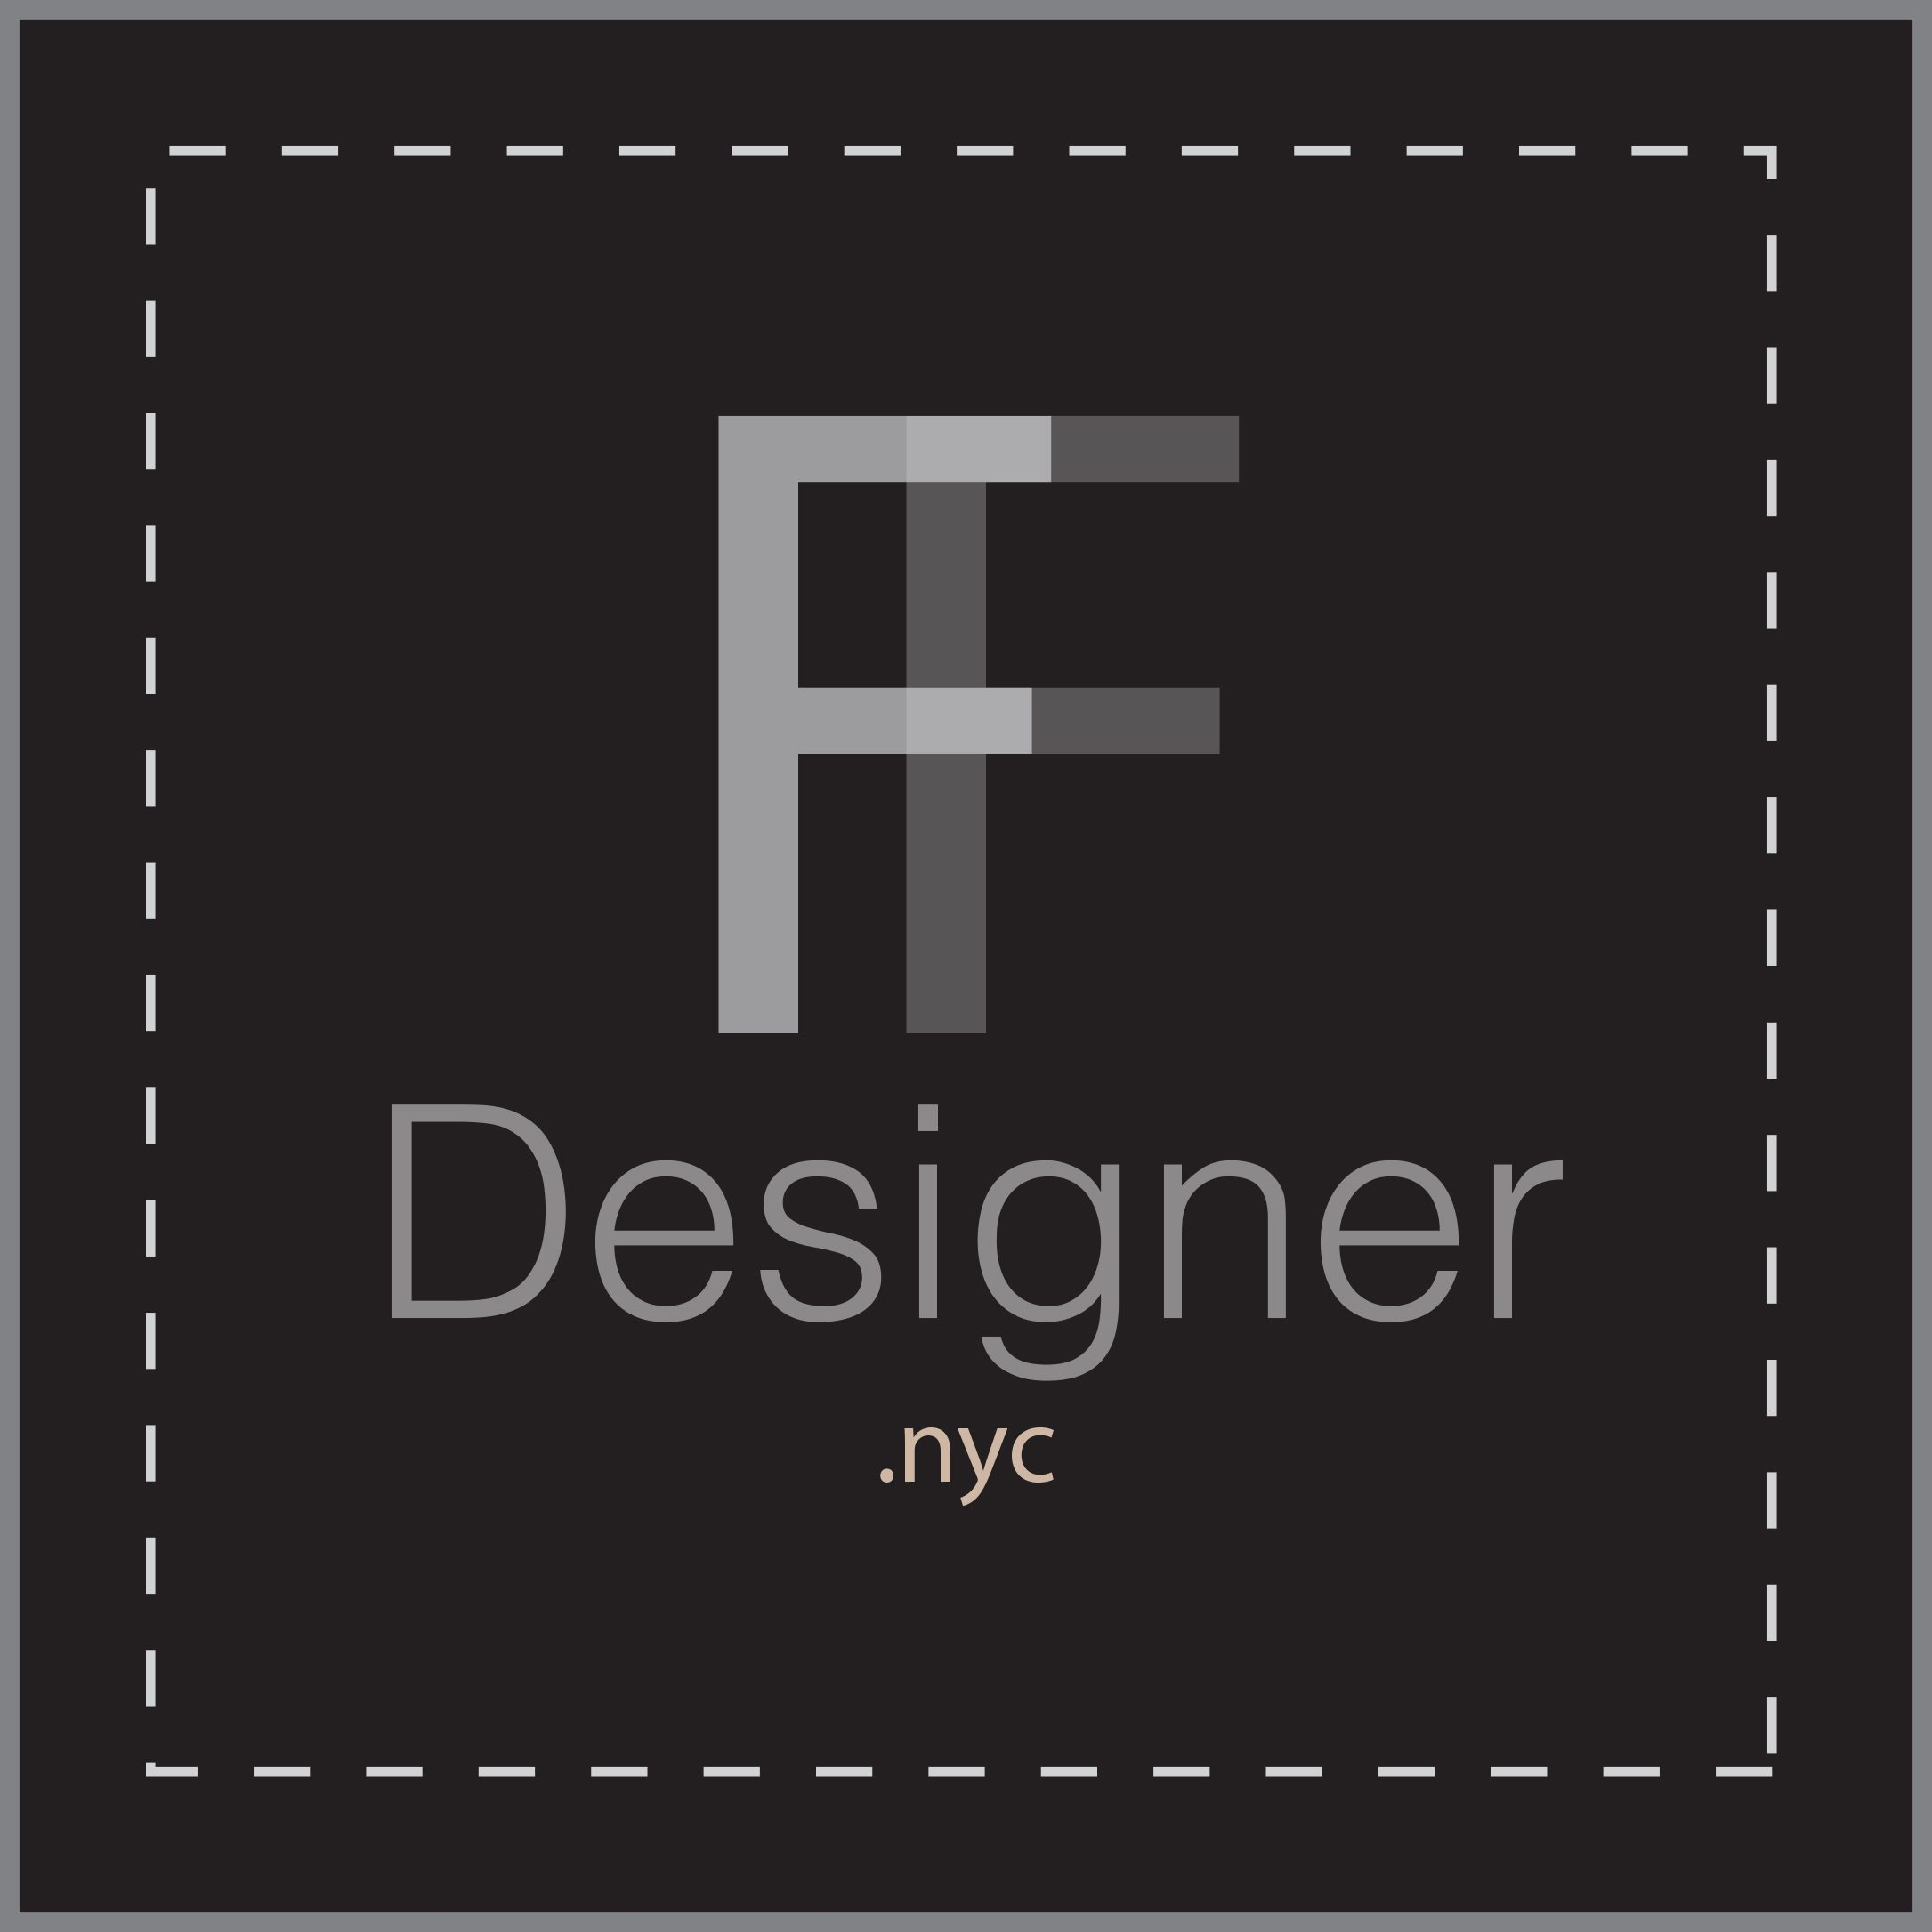 freelance fashion designer nyc|freelance fashion designer services|fashion freelance